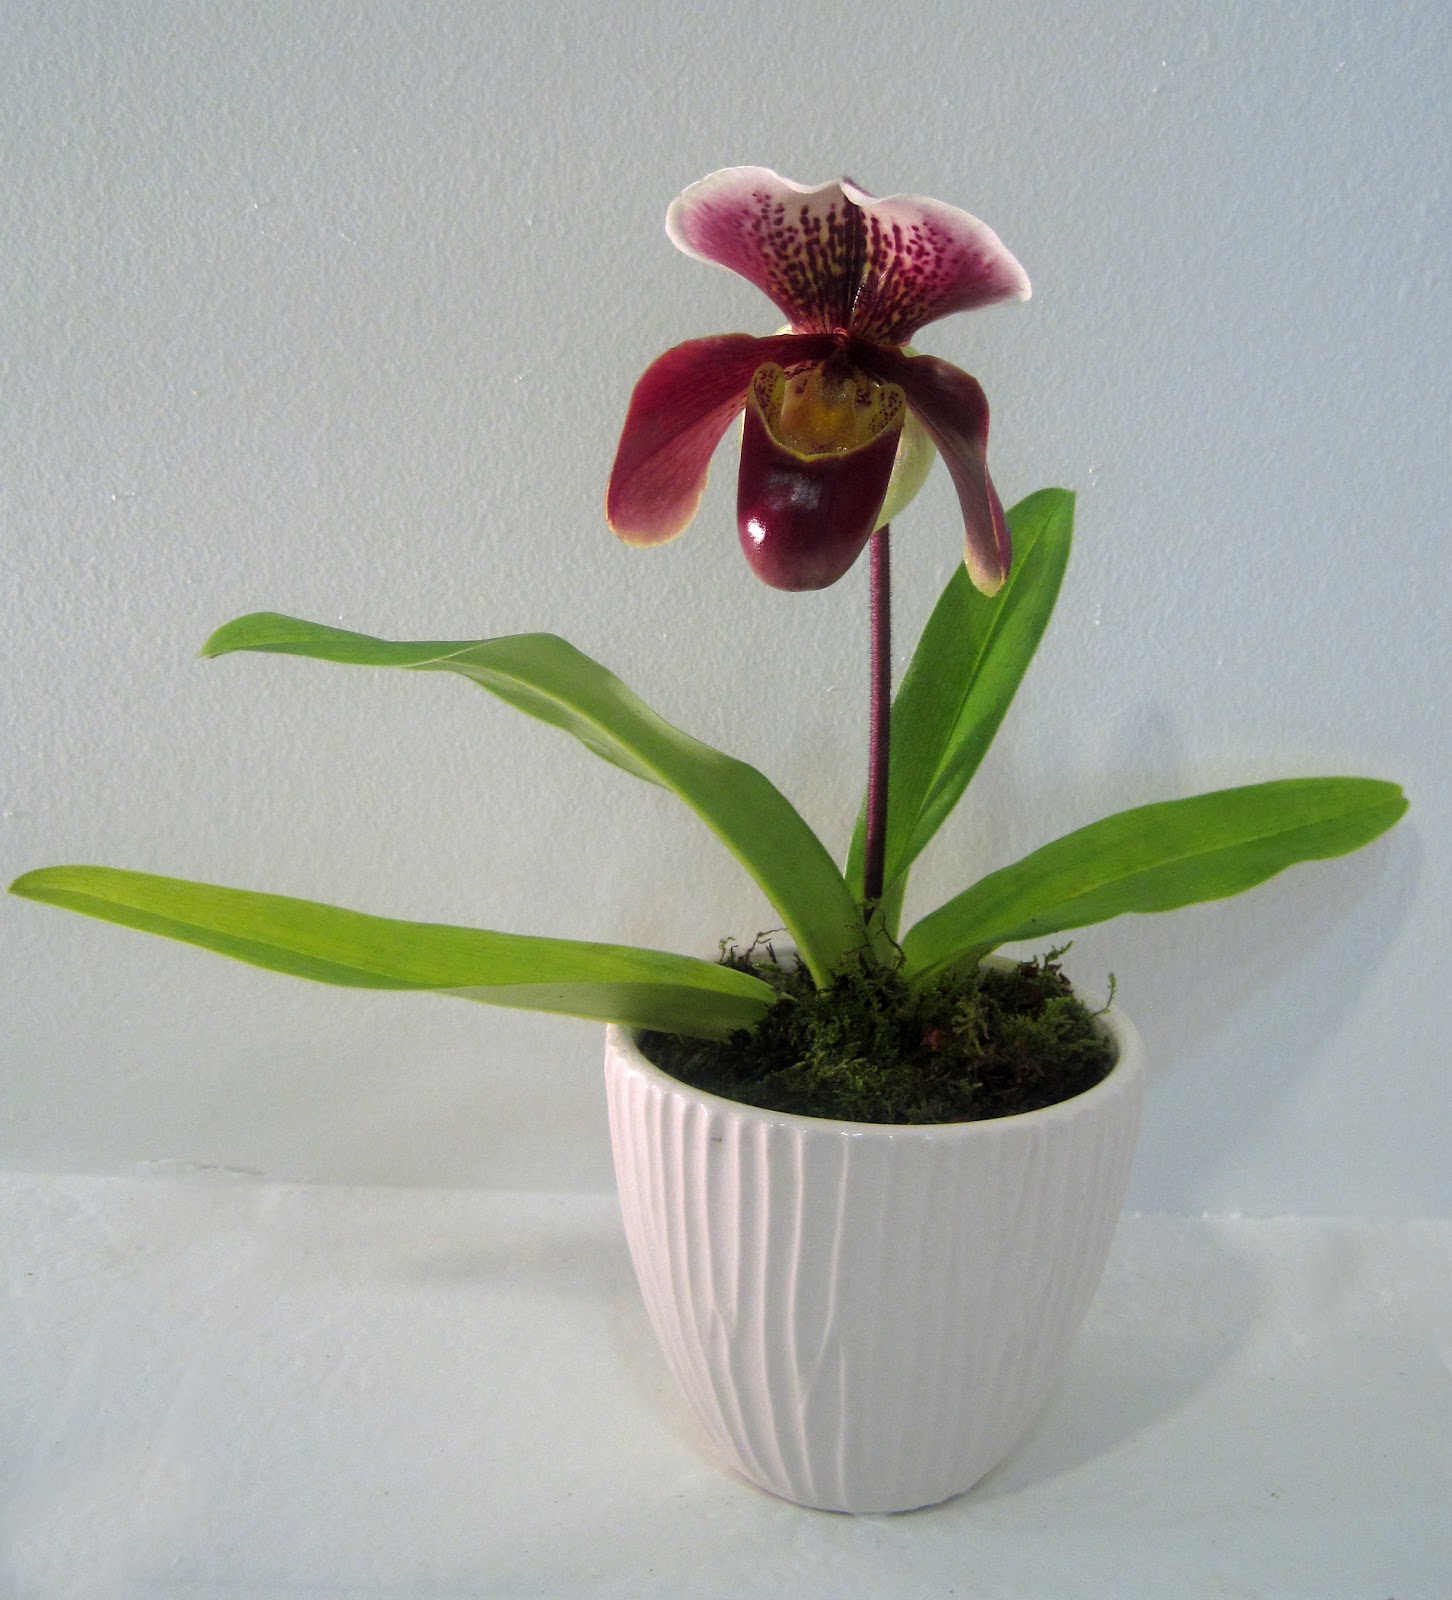 slipper orchid care instructions